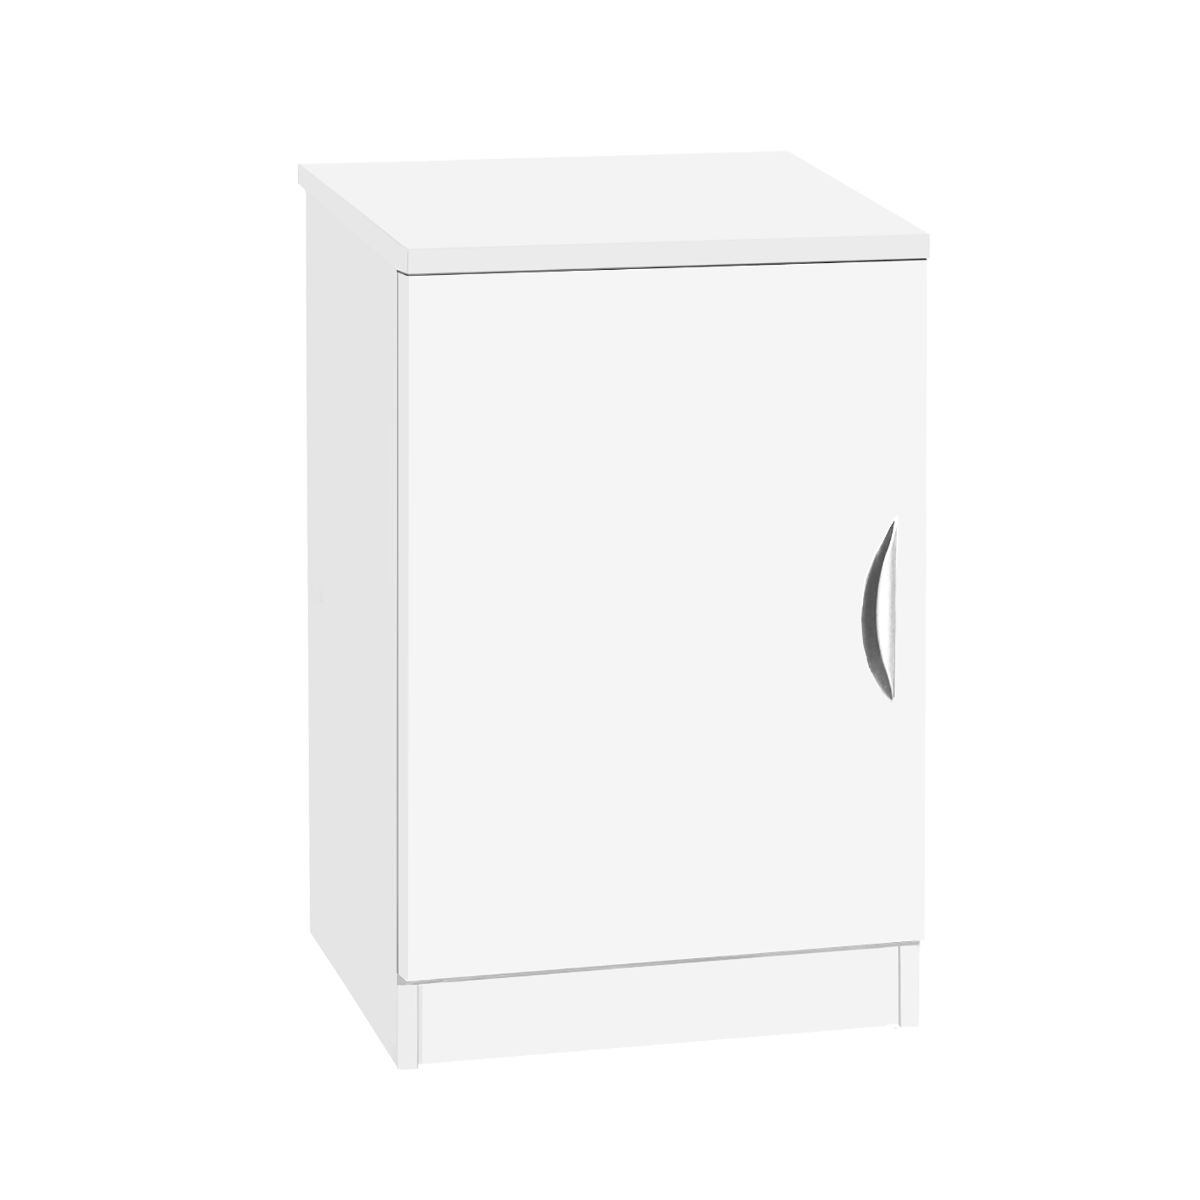 R White Desk Height Wide Cupboard 48cm White Satin, White Satin